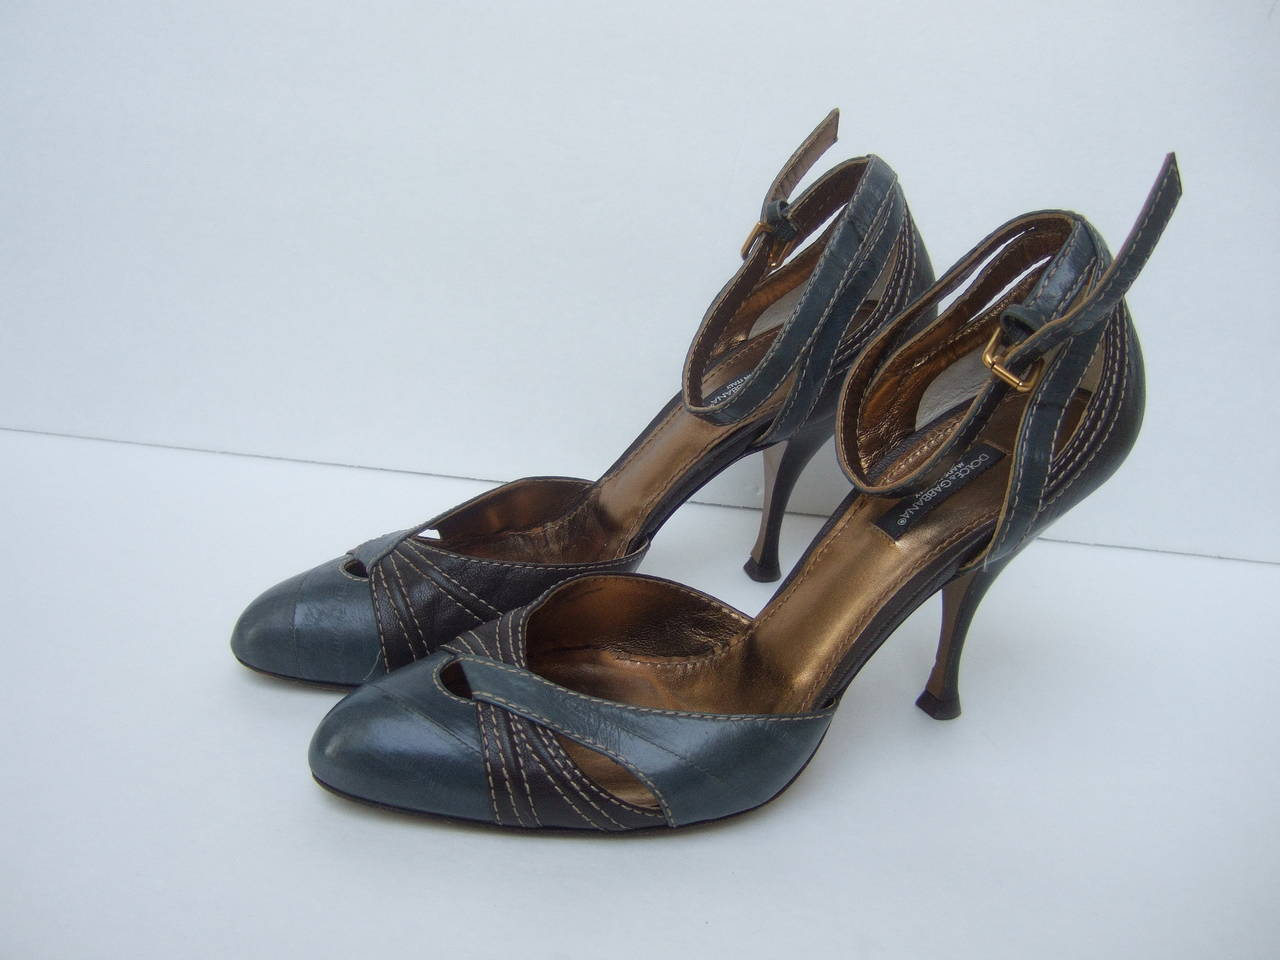 Dolce & Gabbana Gray & brown ankle strap shoes Size 39.5 Made in Italy